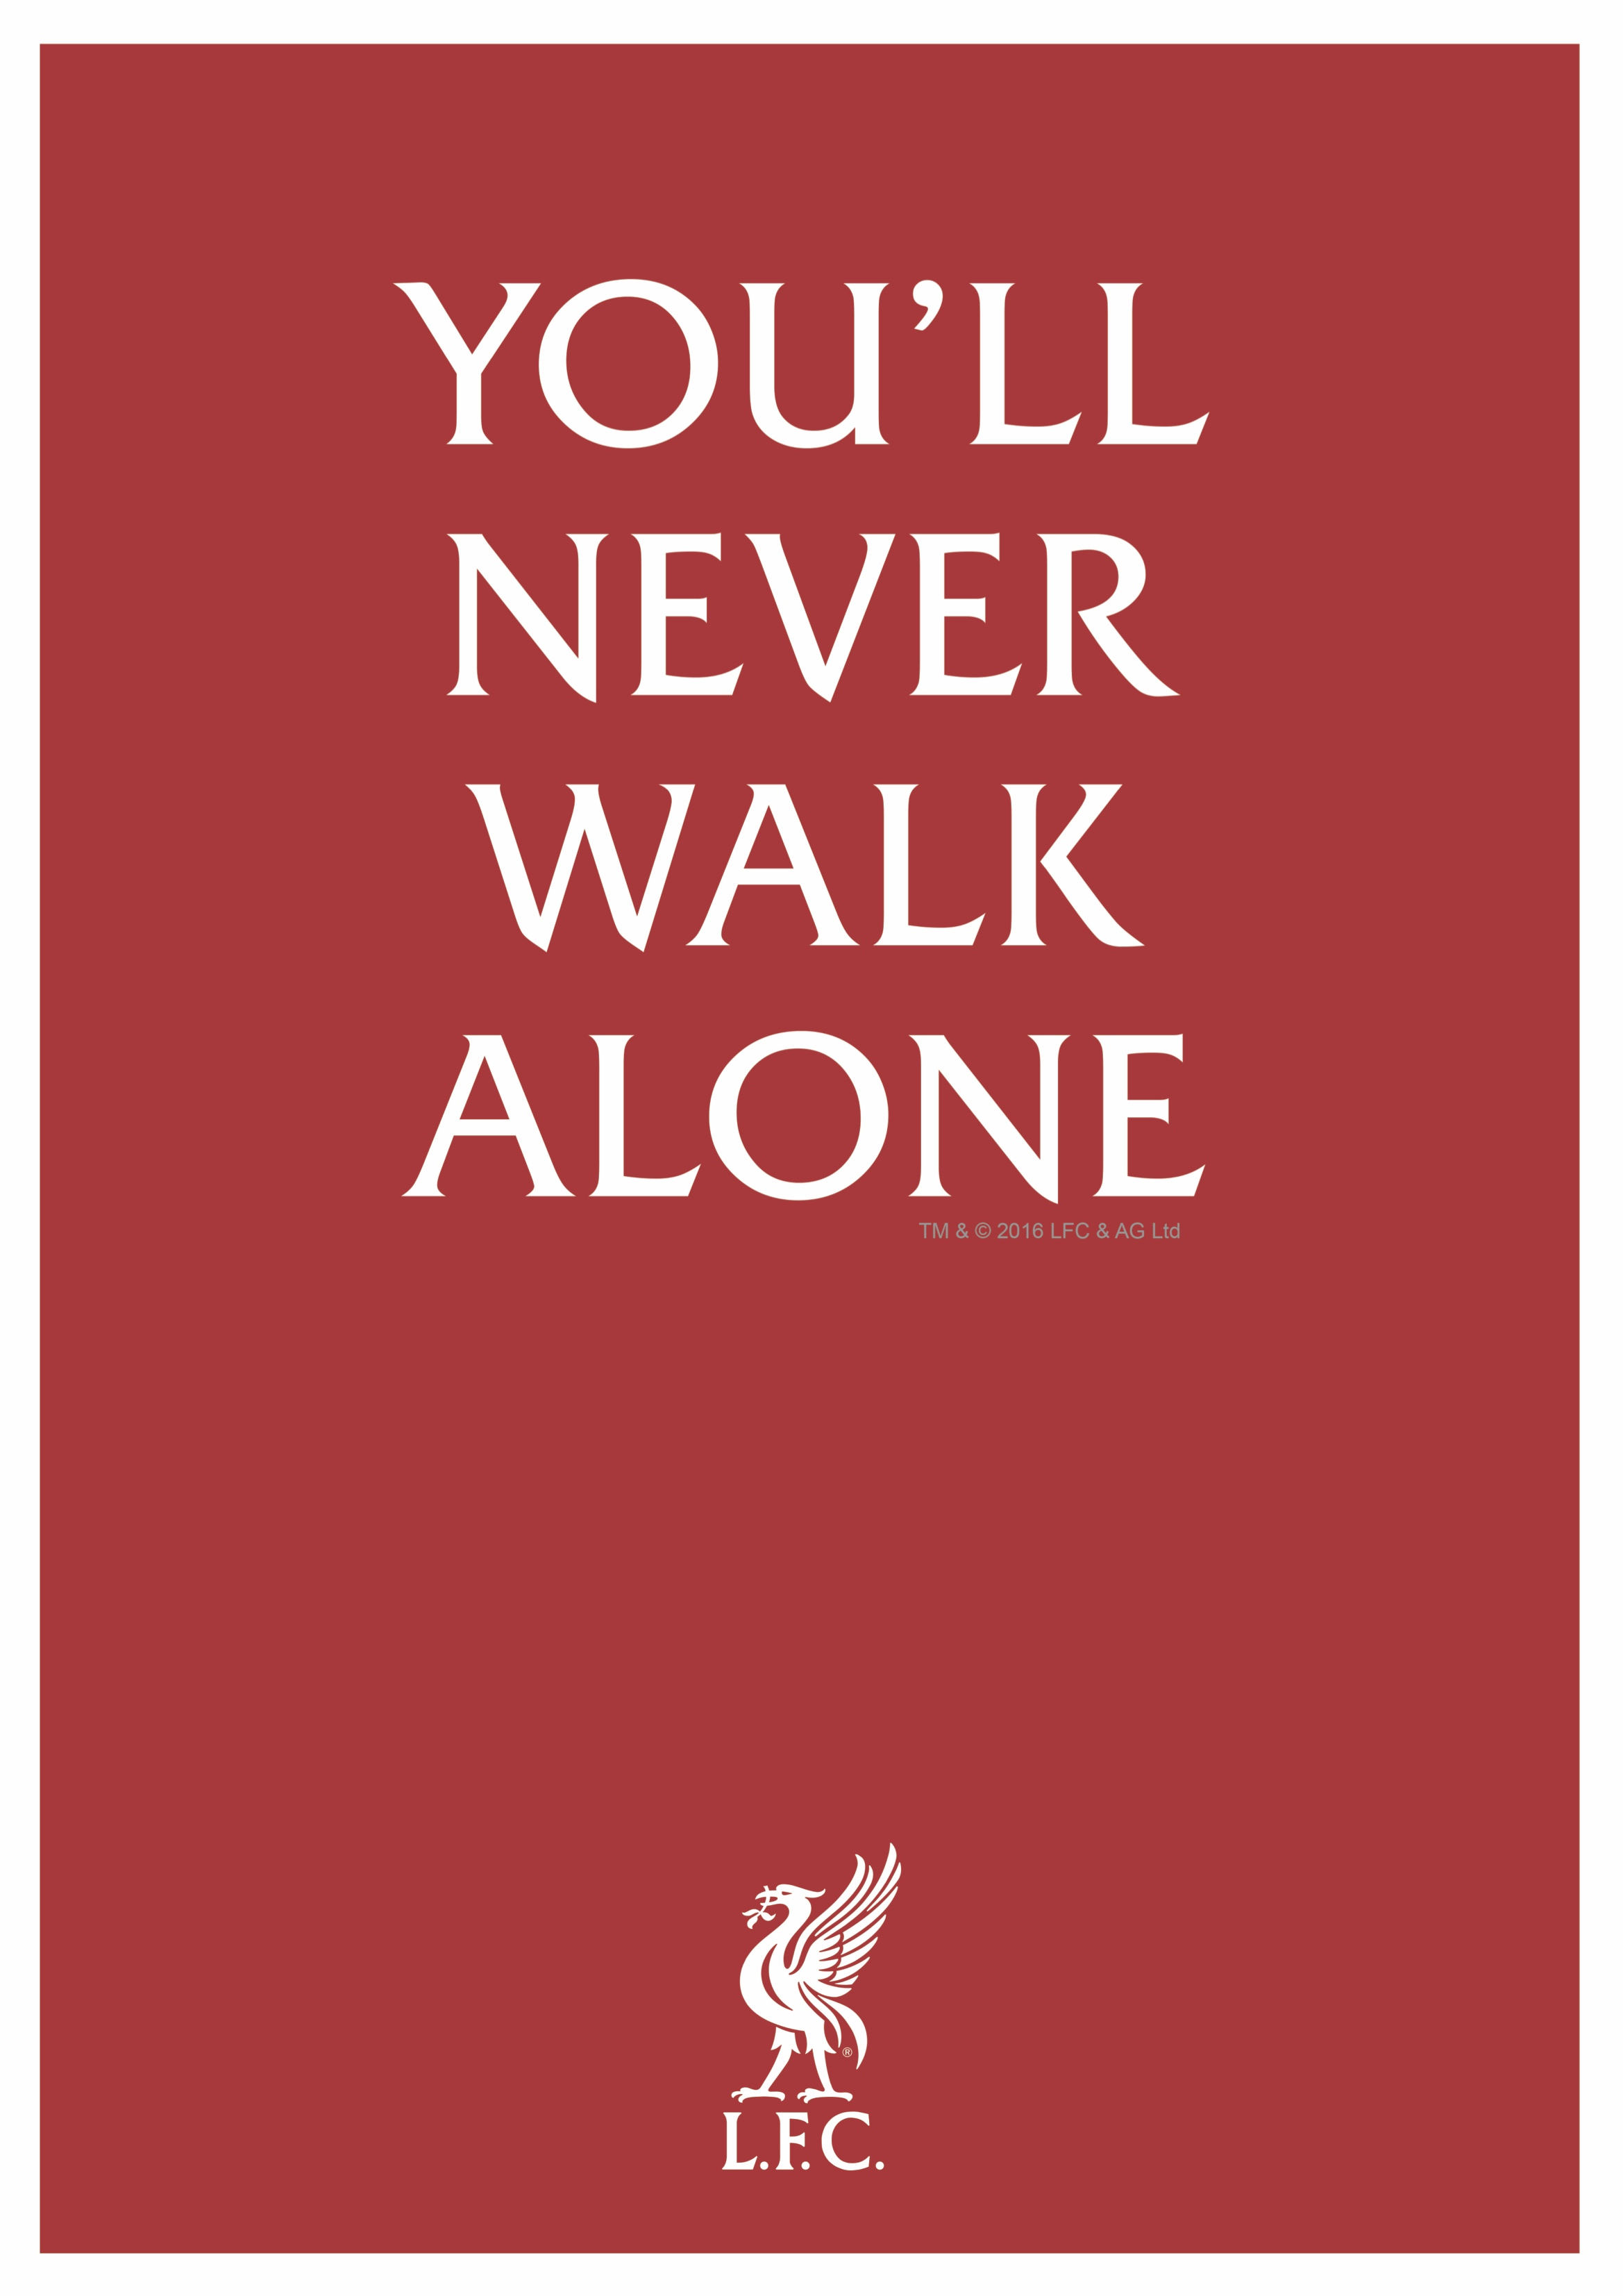 LFC Youll Never Walk Alone Rather says it all 2338x3307